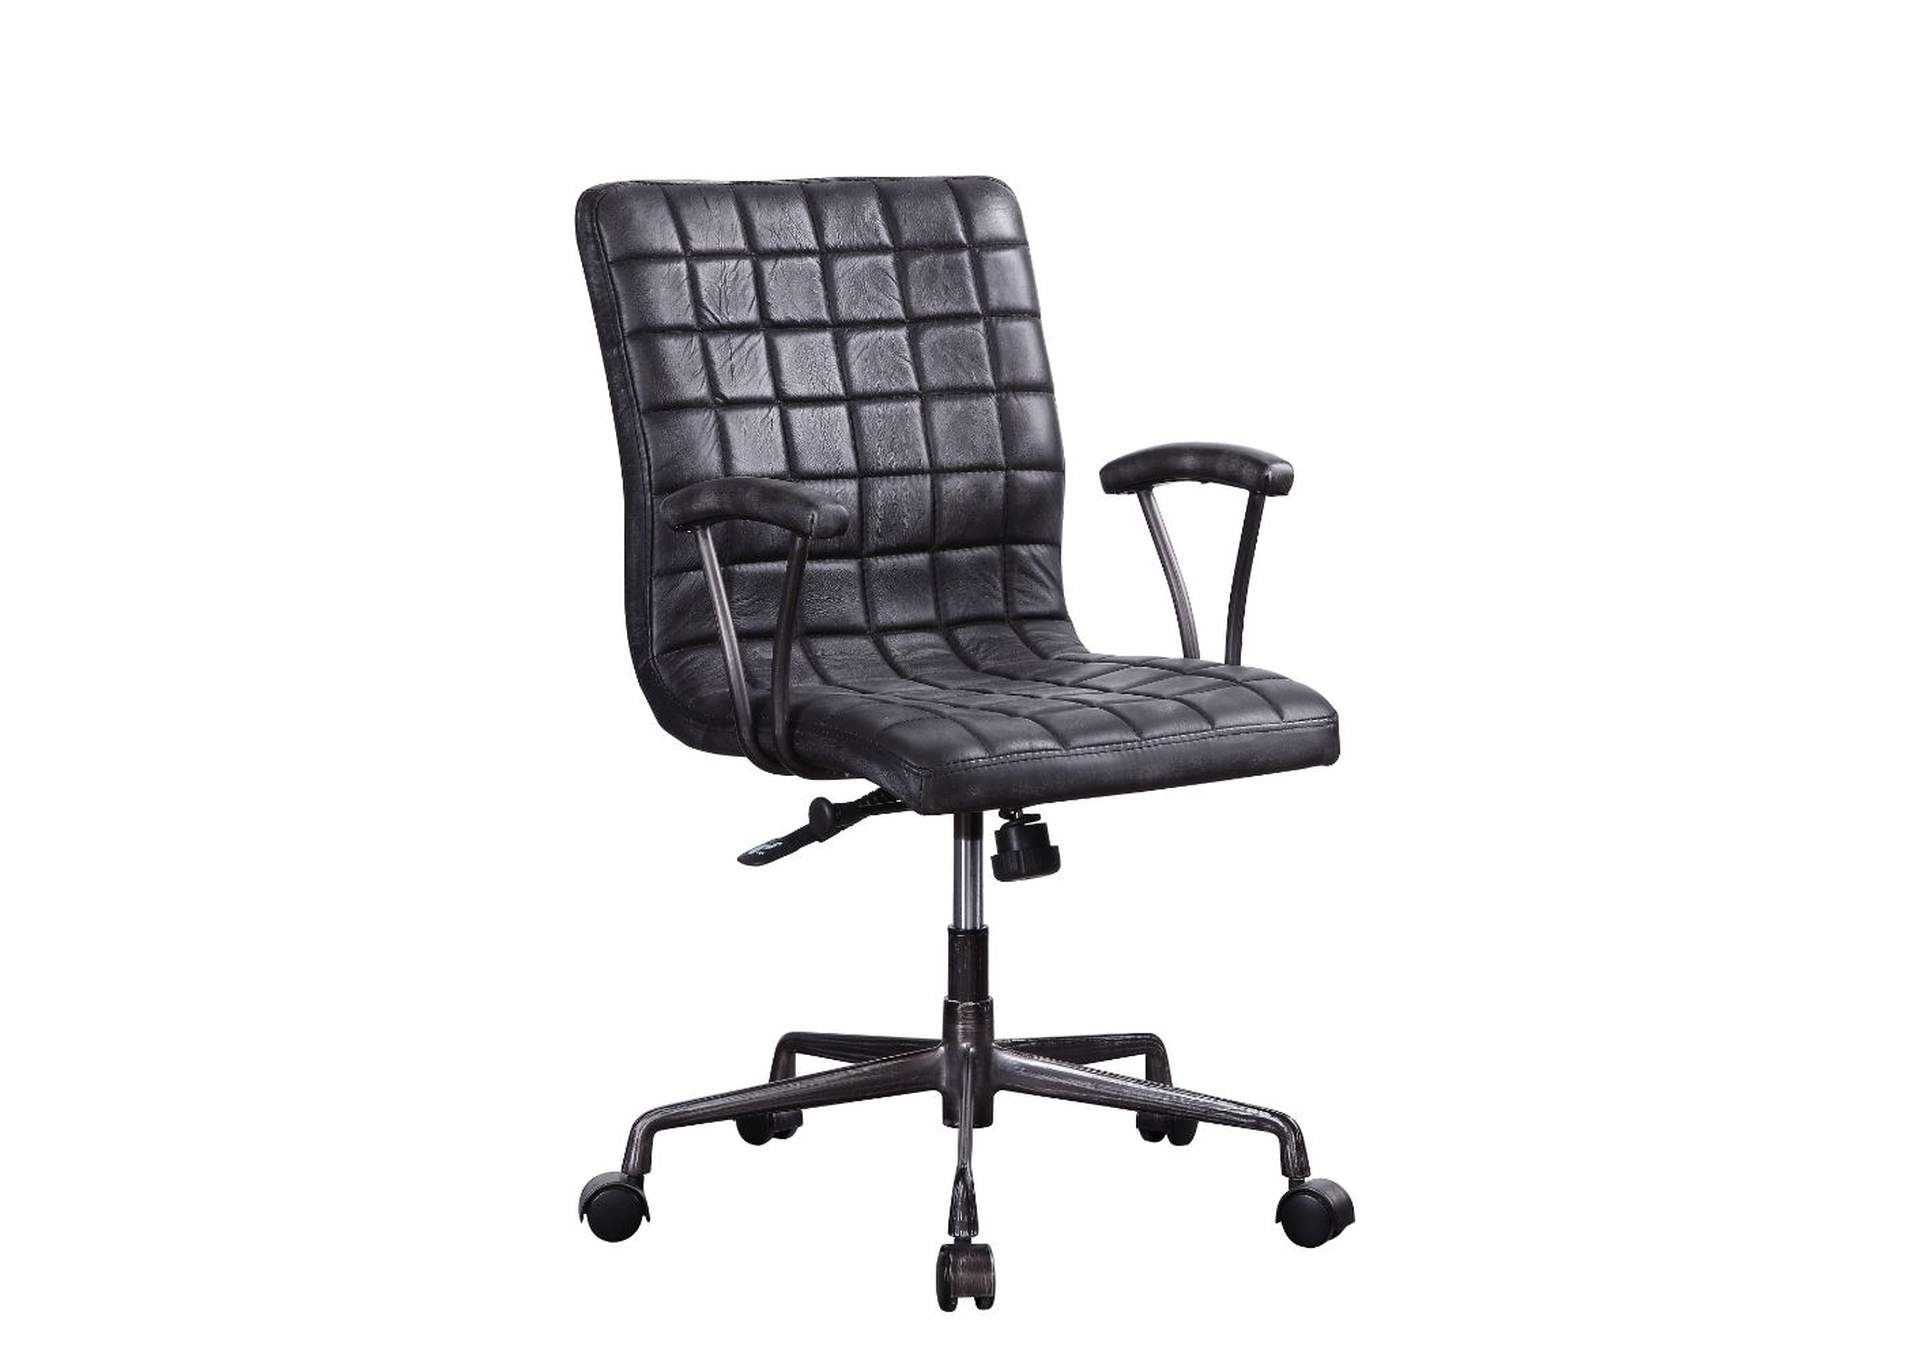 Barack Vintage Black/Aluminum Office Chair,Acme